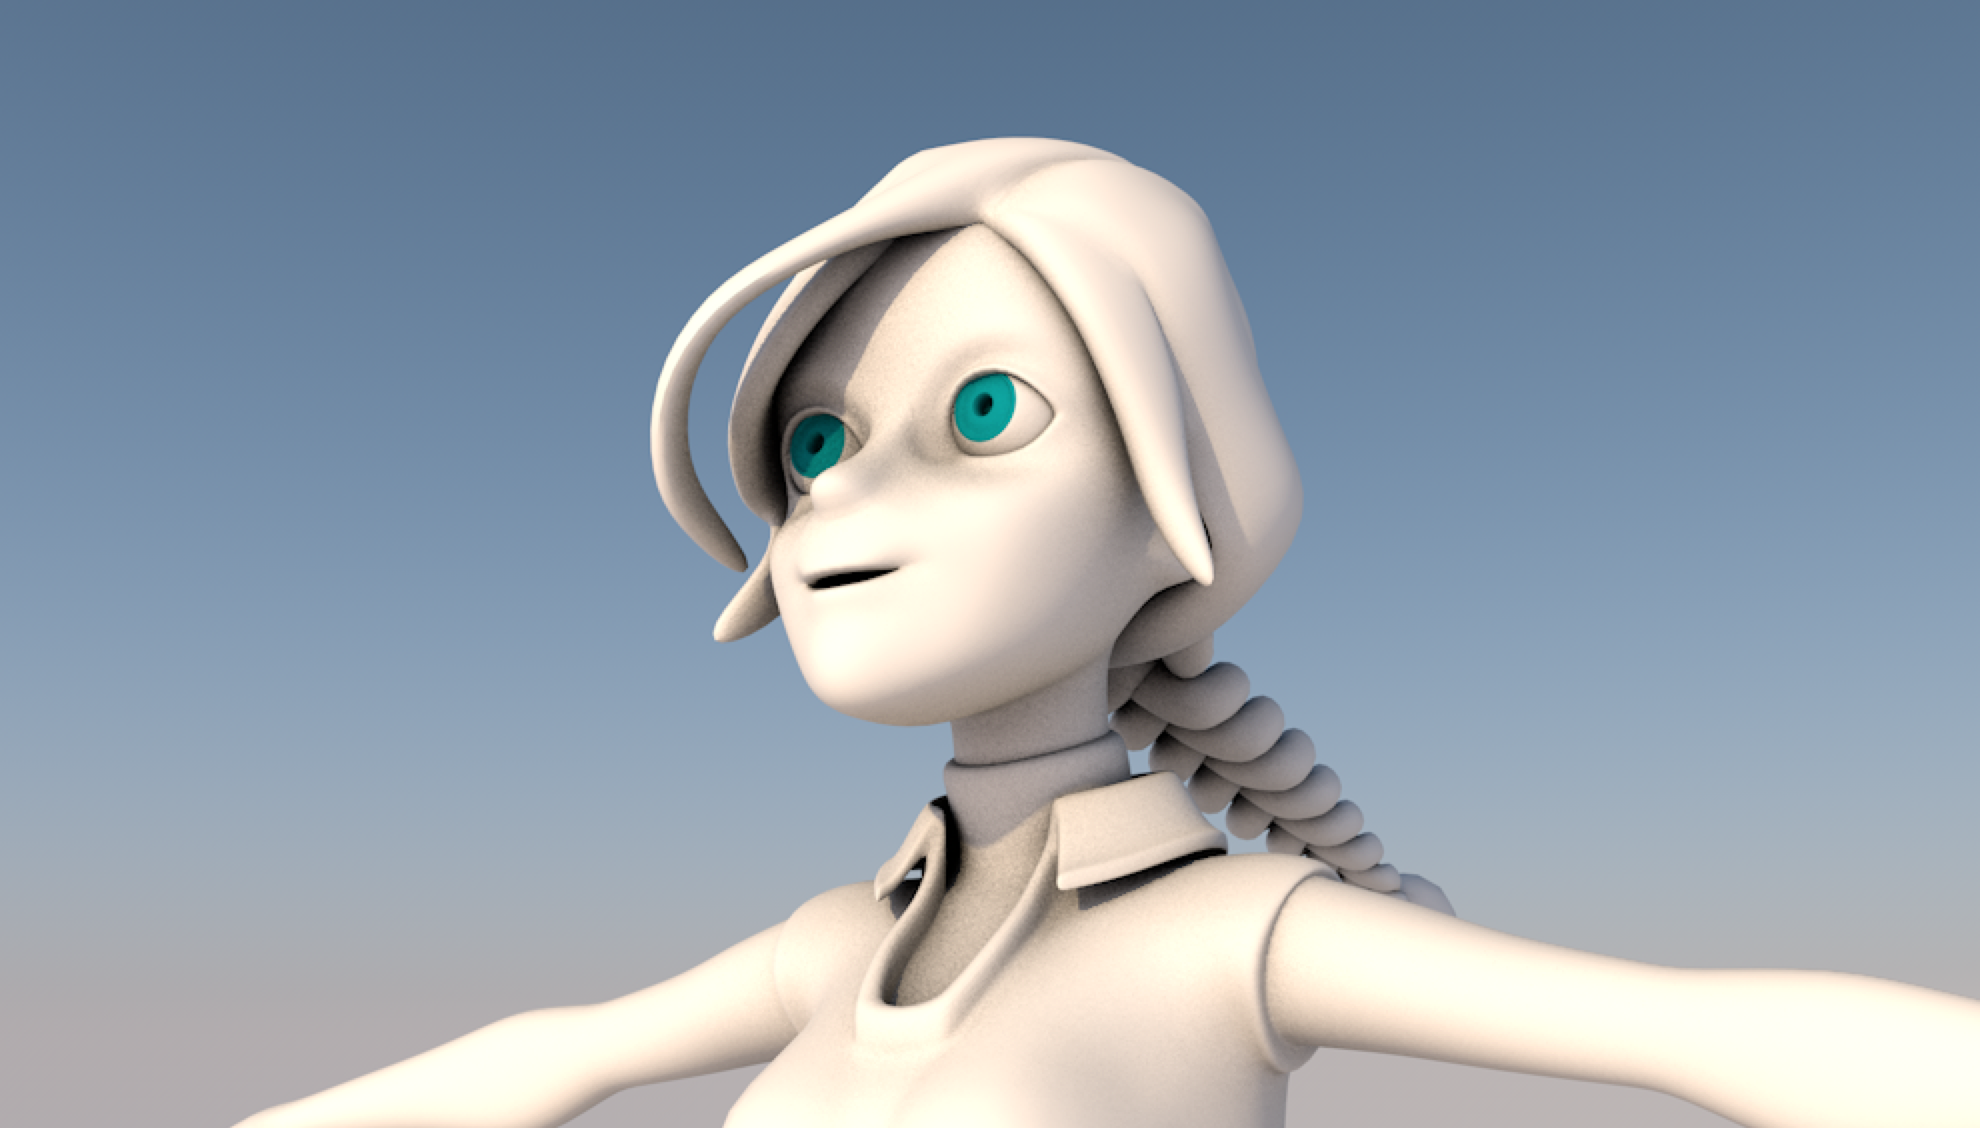 3D Anime Character in C4D